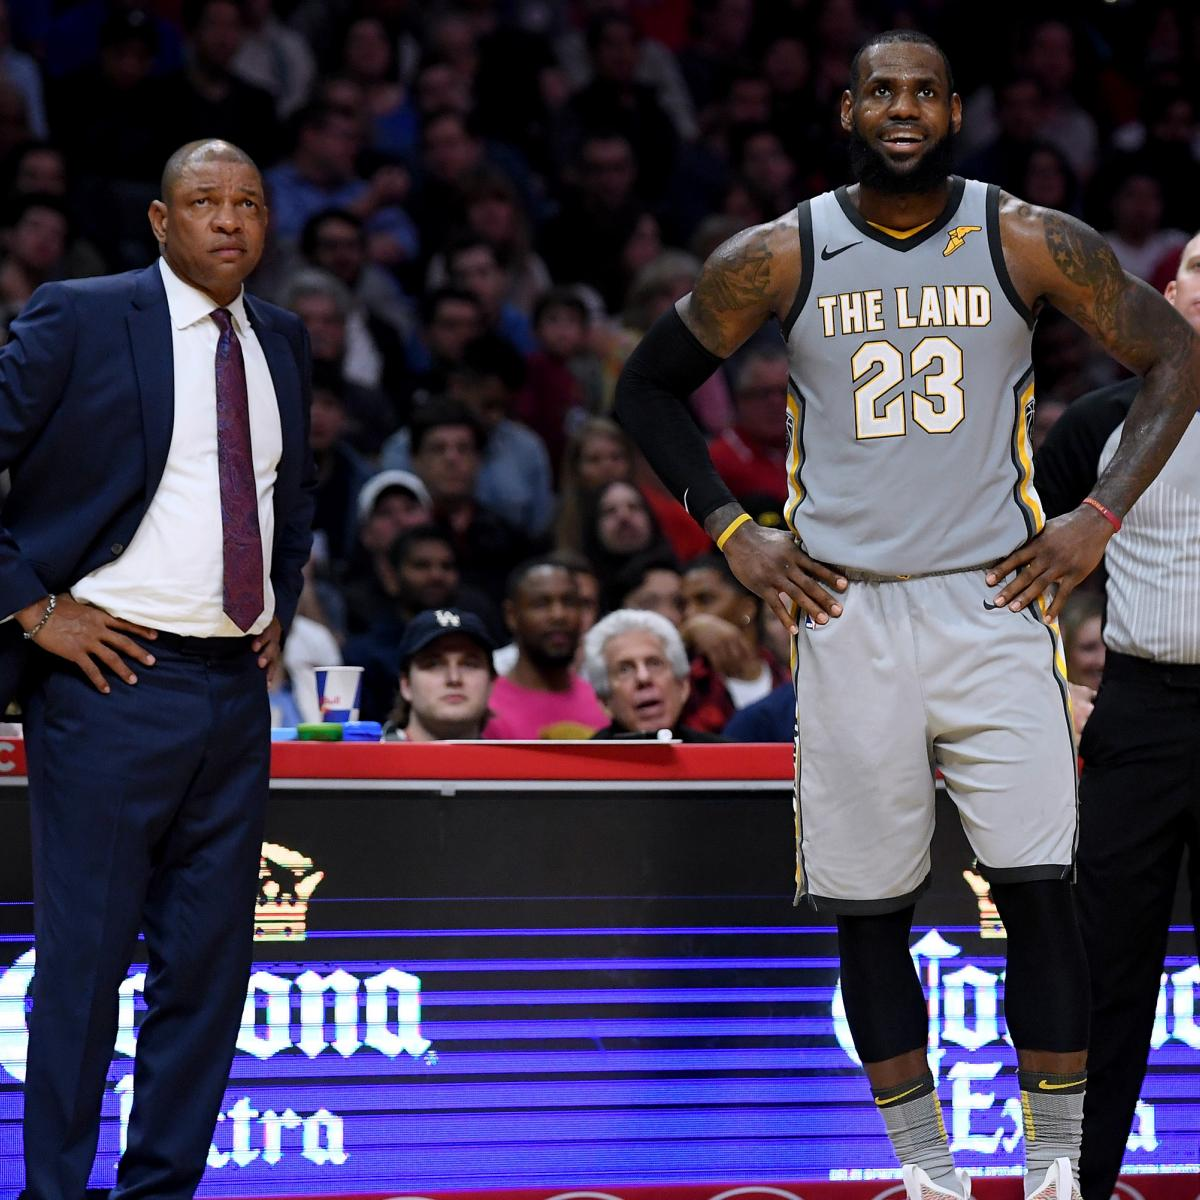 Doc Rivers on LeBron James: 'There's No One in the League with His Brain'